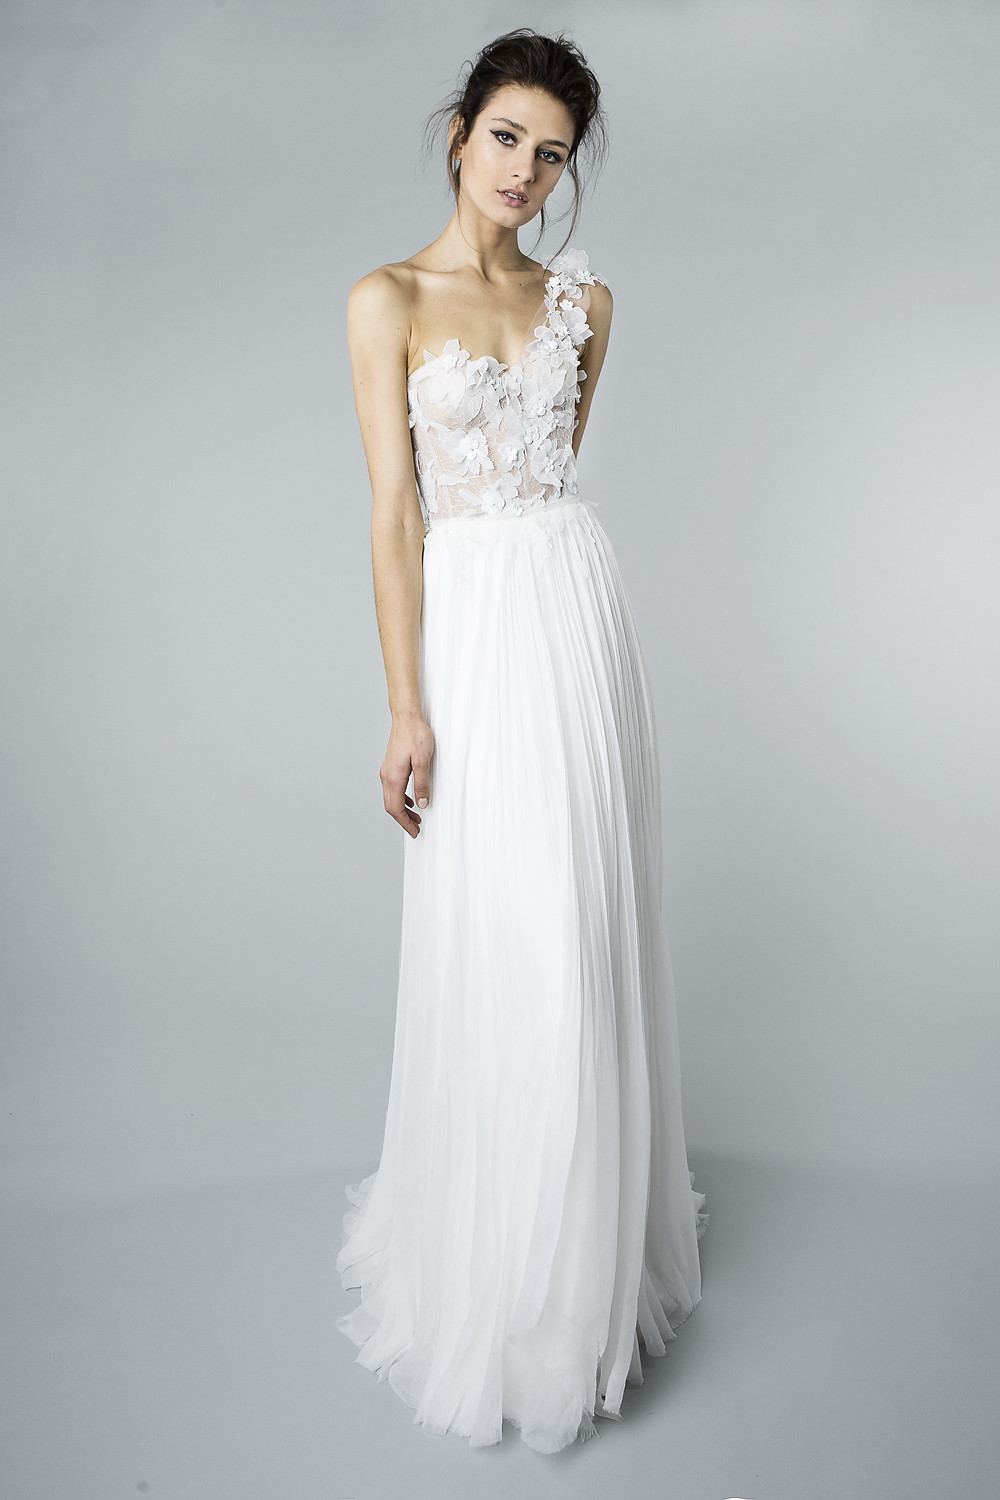 A one shoulder, sheath wedding dress with pleated skirt and flowers